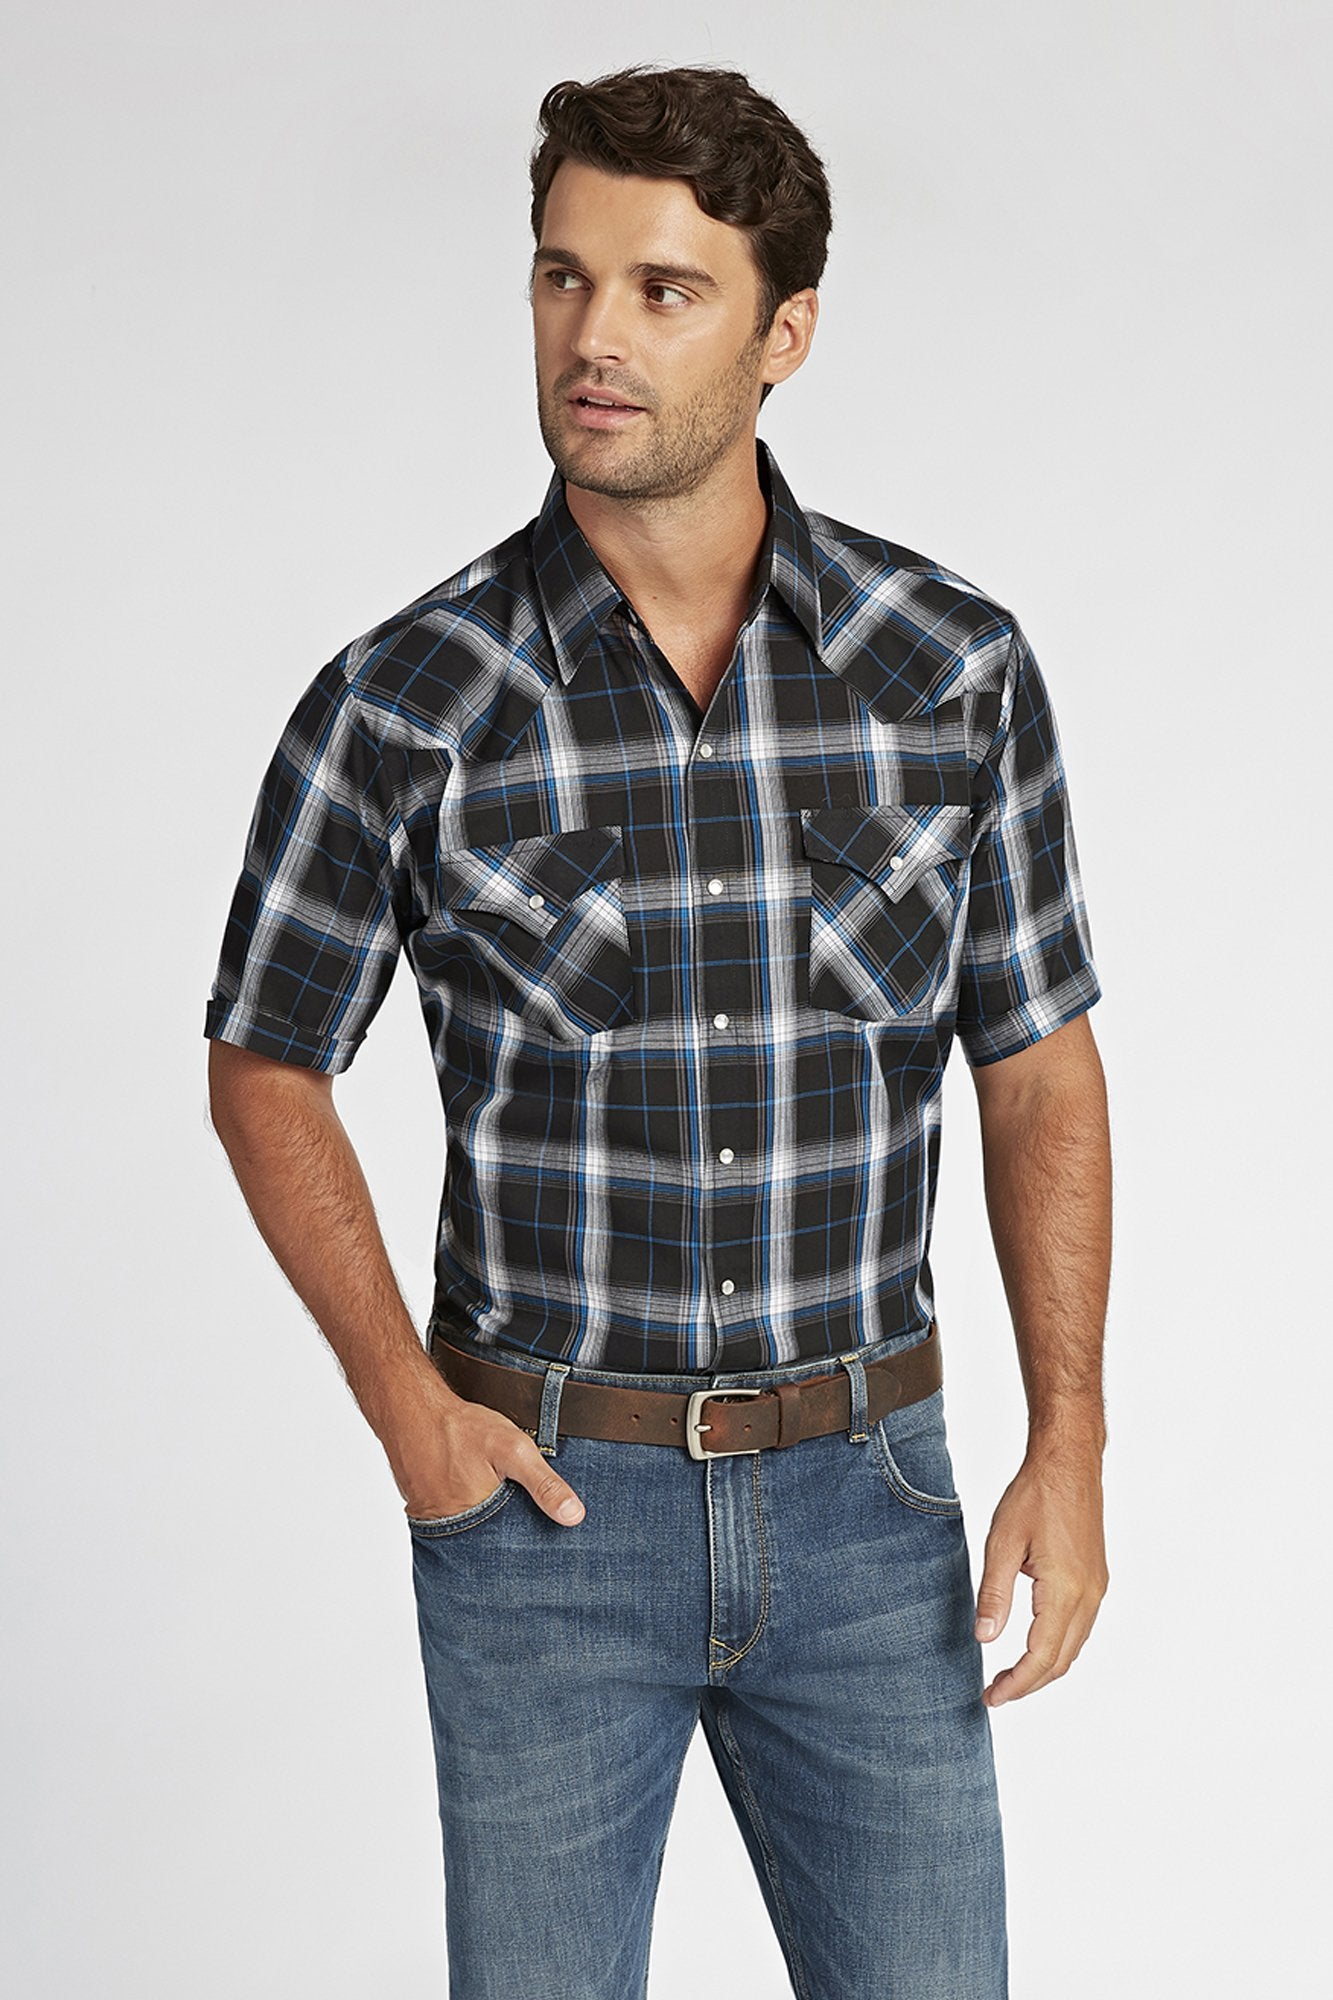 Short Sleeve Plaid Shirt in Black Plaid | Ely Cattleman